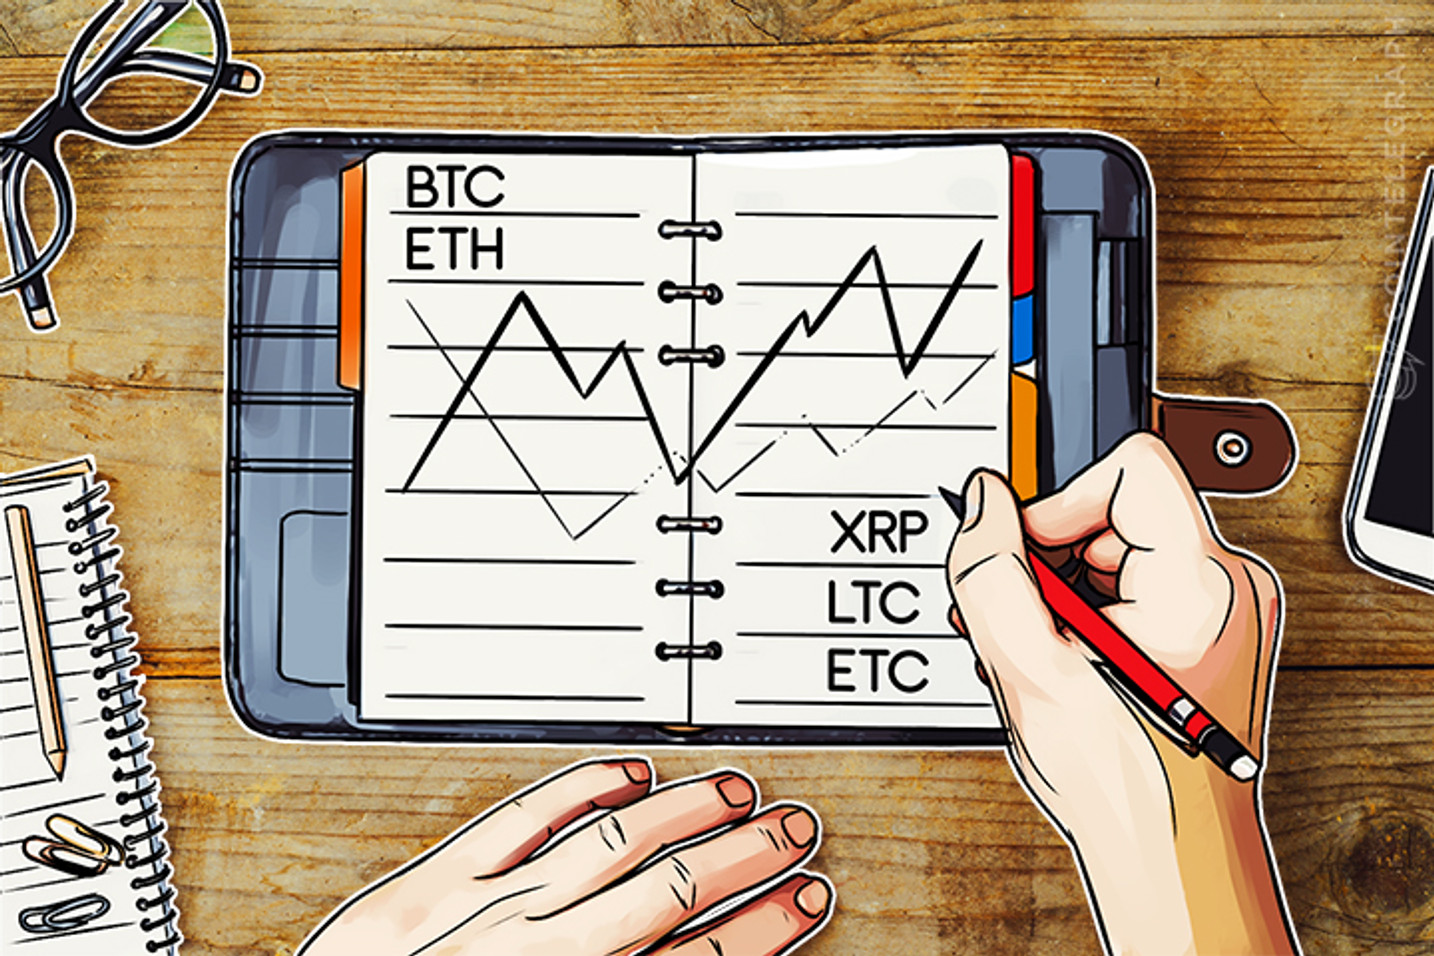 Price Analysis, August 9: Bitcoin, Ethereum, Ripple, Litecoin, Ethereum Classic